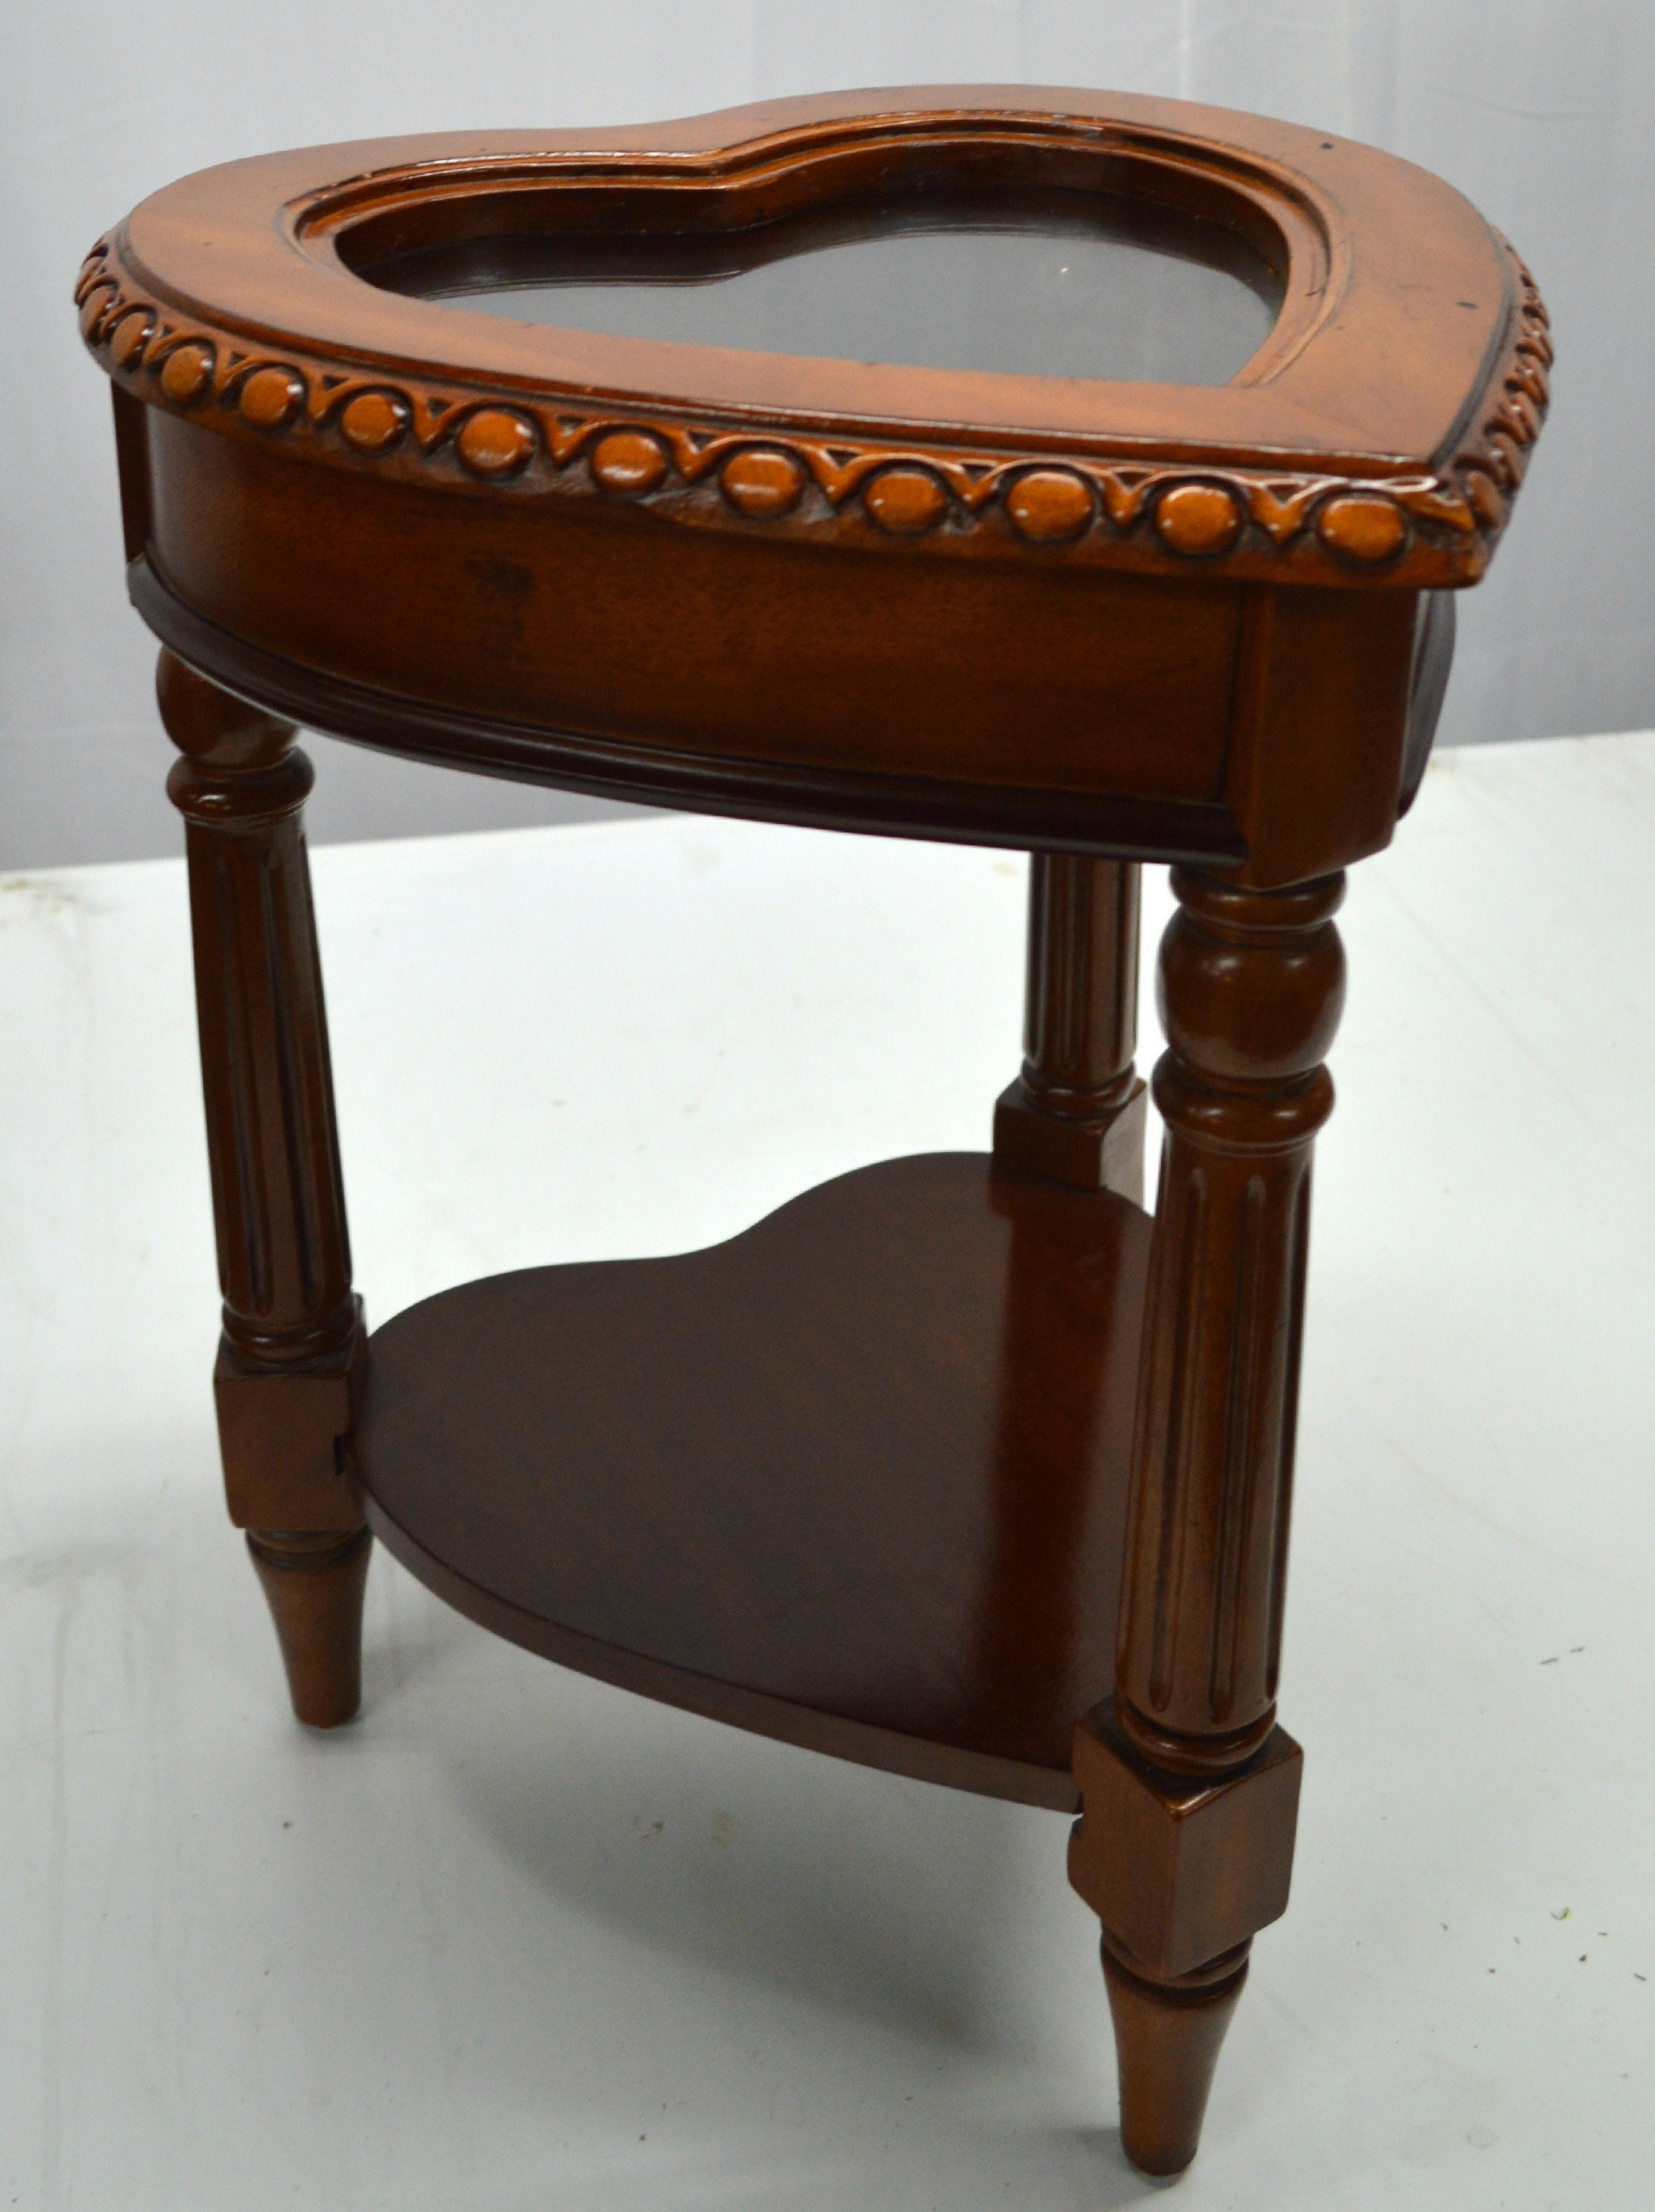 Merveilleux Accent Table With Top Display Case With Glass. Carved Wood Frame Makes  Emphases In The